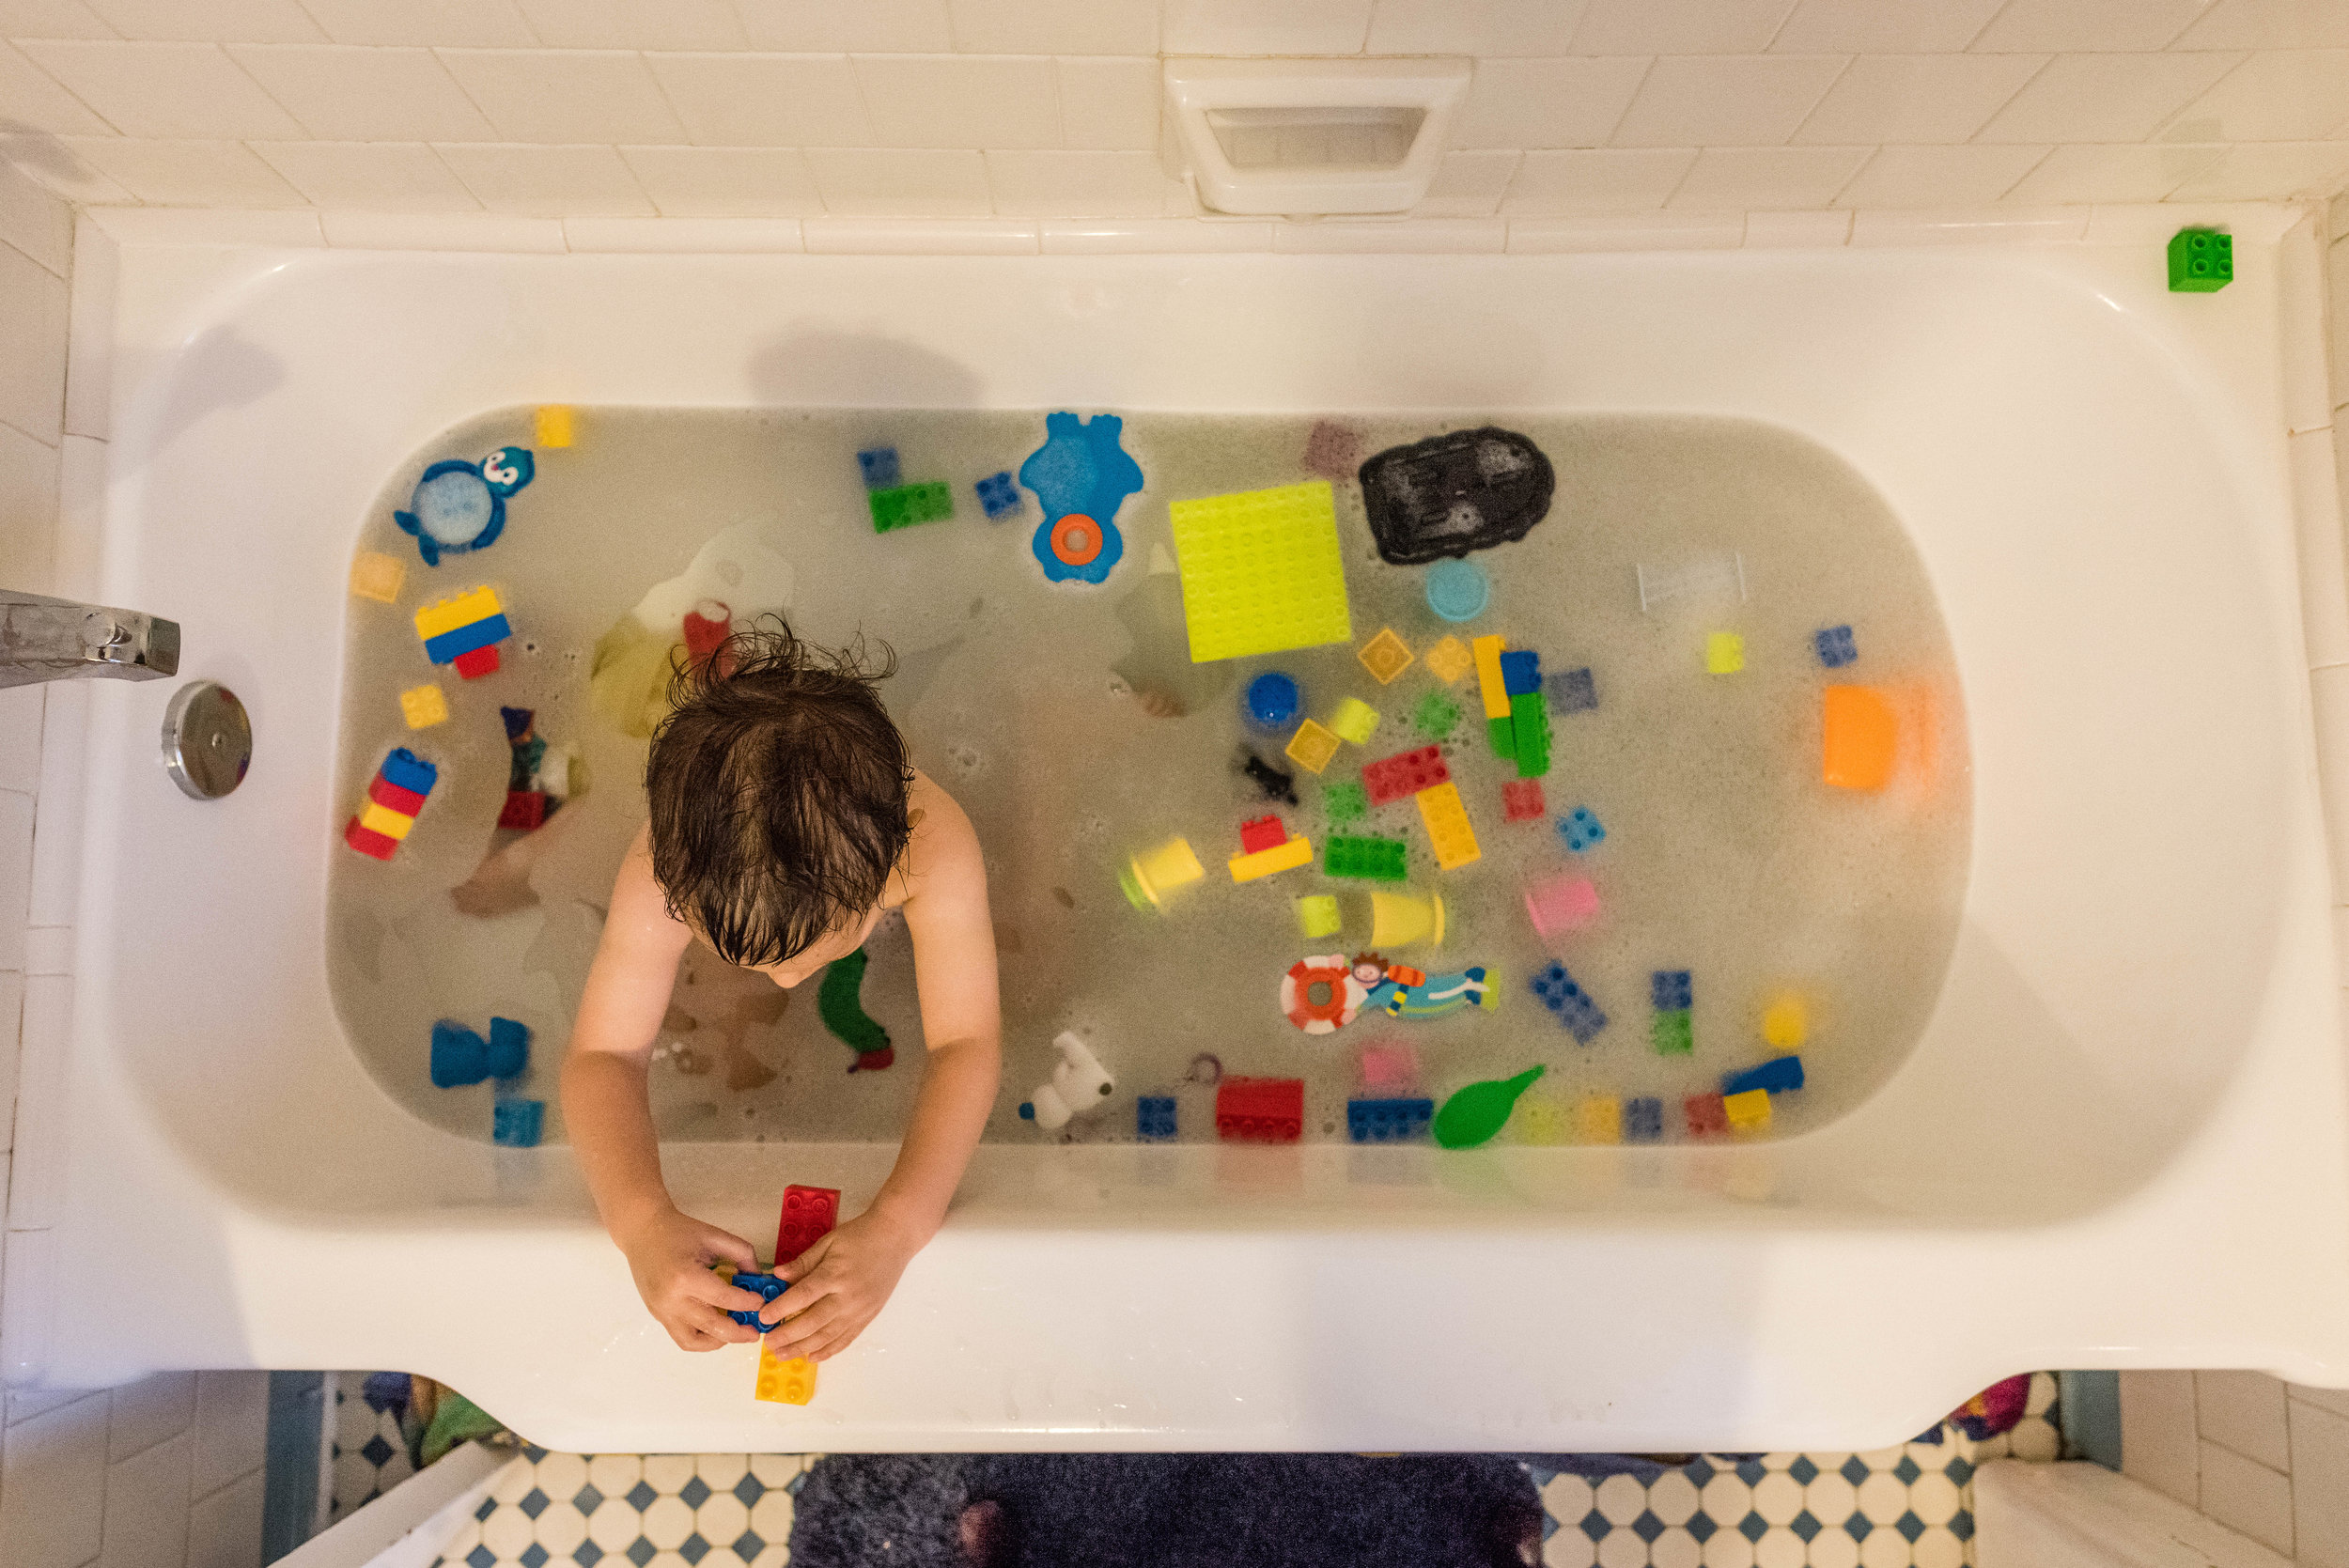 Boy playing with legos in bath by Northern Virginia Family Photographer Nicole Sanchez